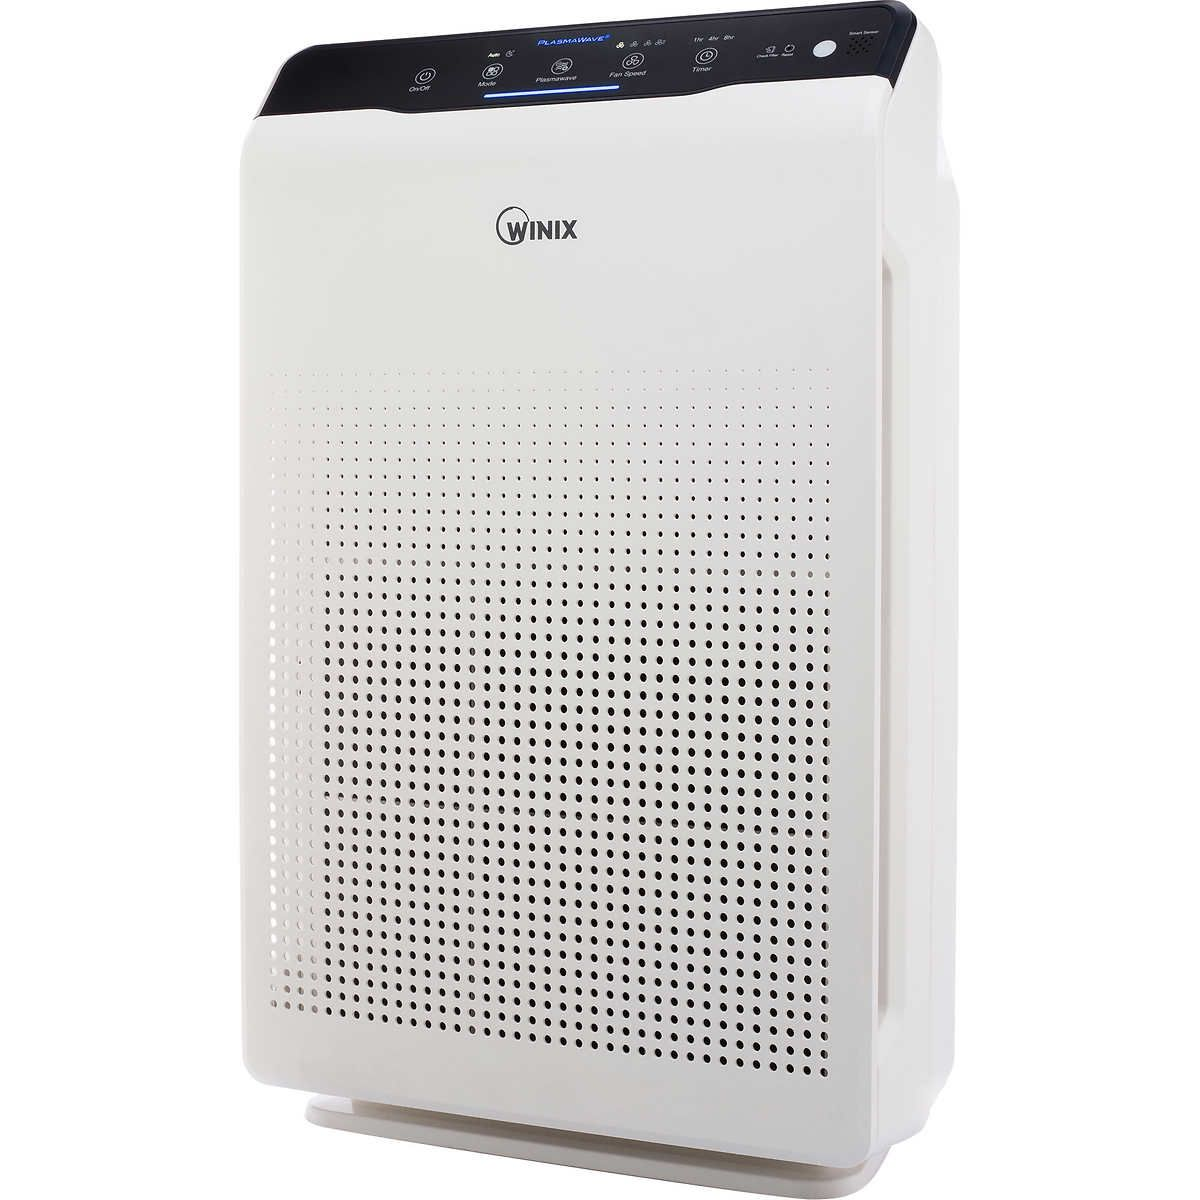 Winix C535 Air Cleaner with PlasmaWave Technology Air